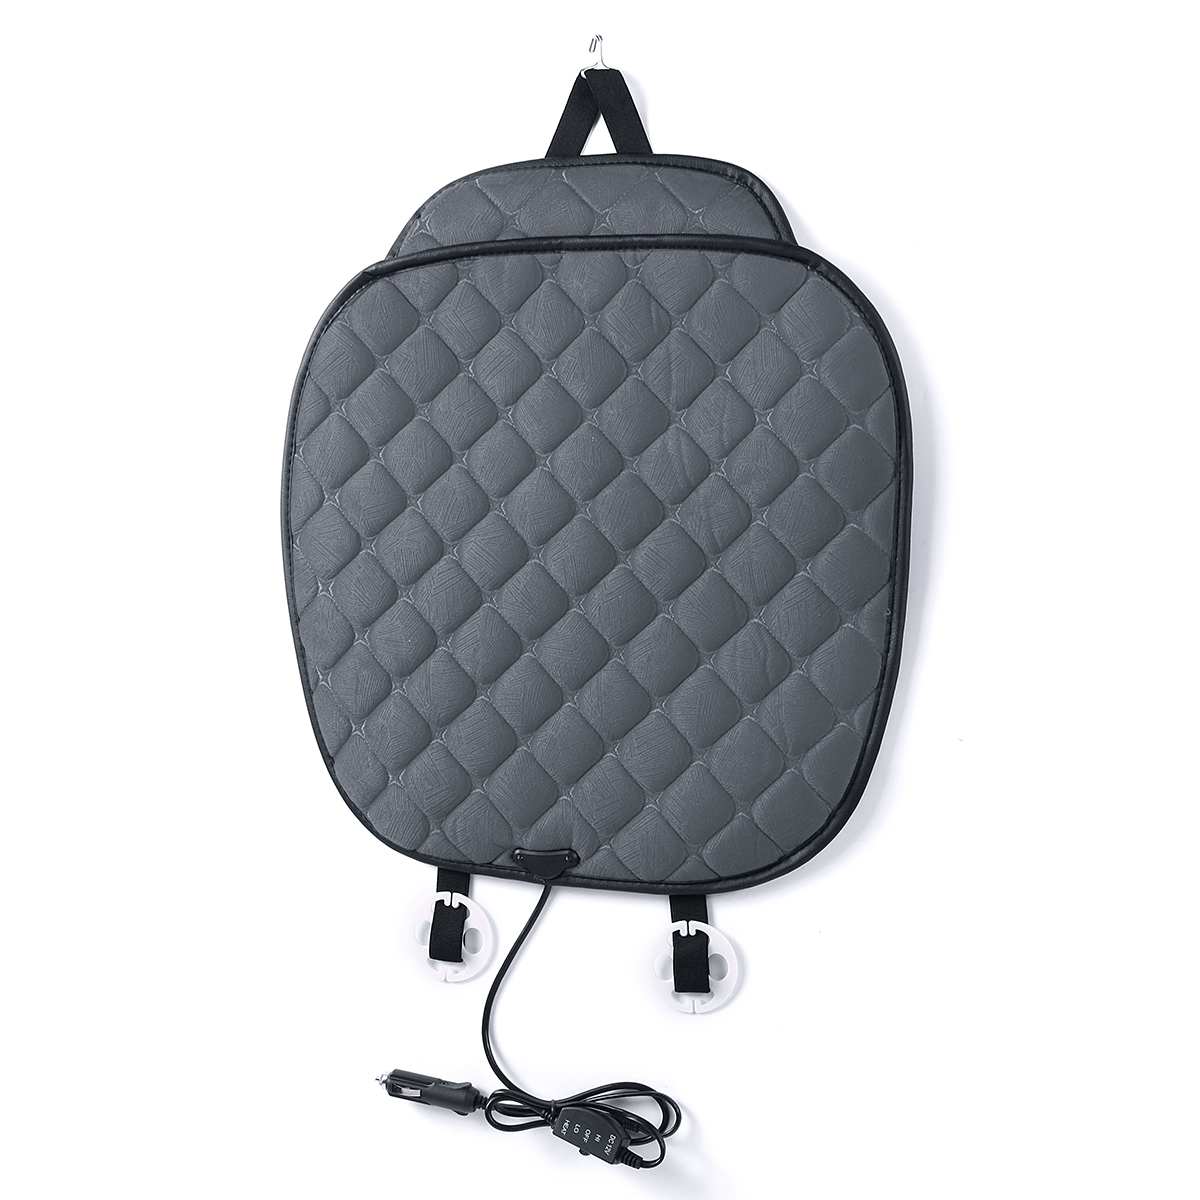 12V Polyester Fiber Car Heated Seat Cushion Seat Warmer Winter Household Cover Electric Heating Mat